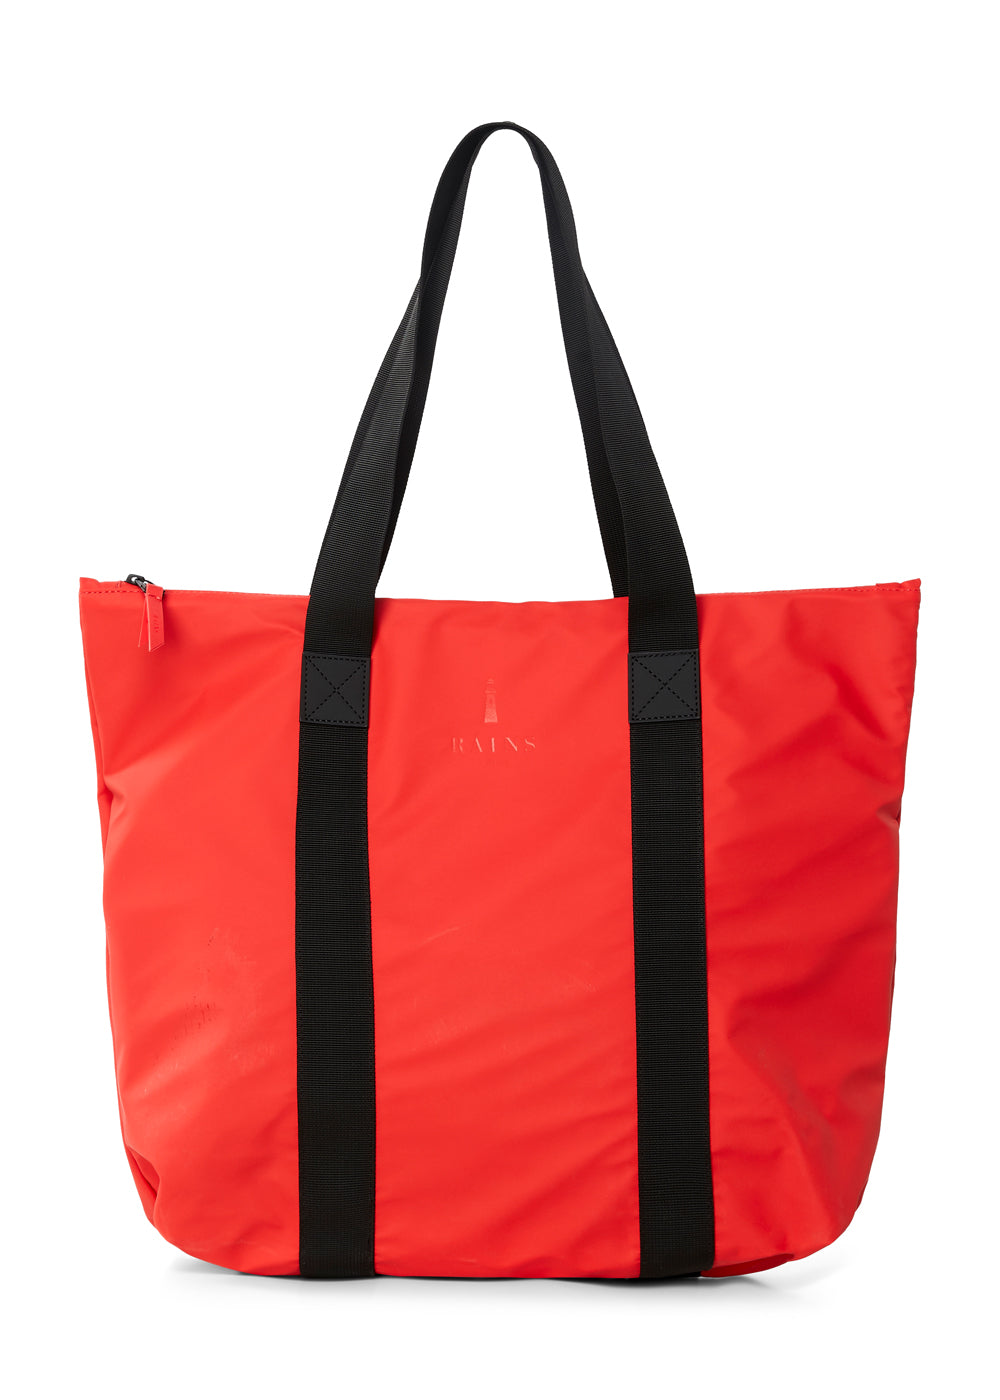 Tote Bag Rush - Red - cara cara